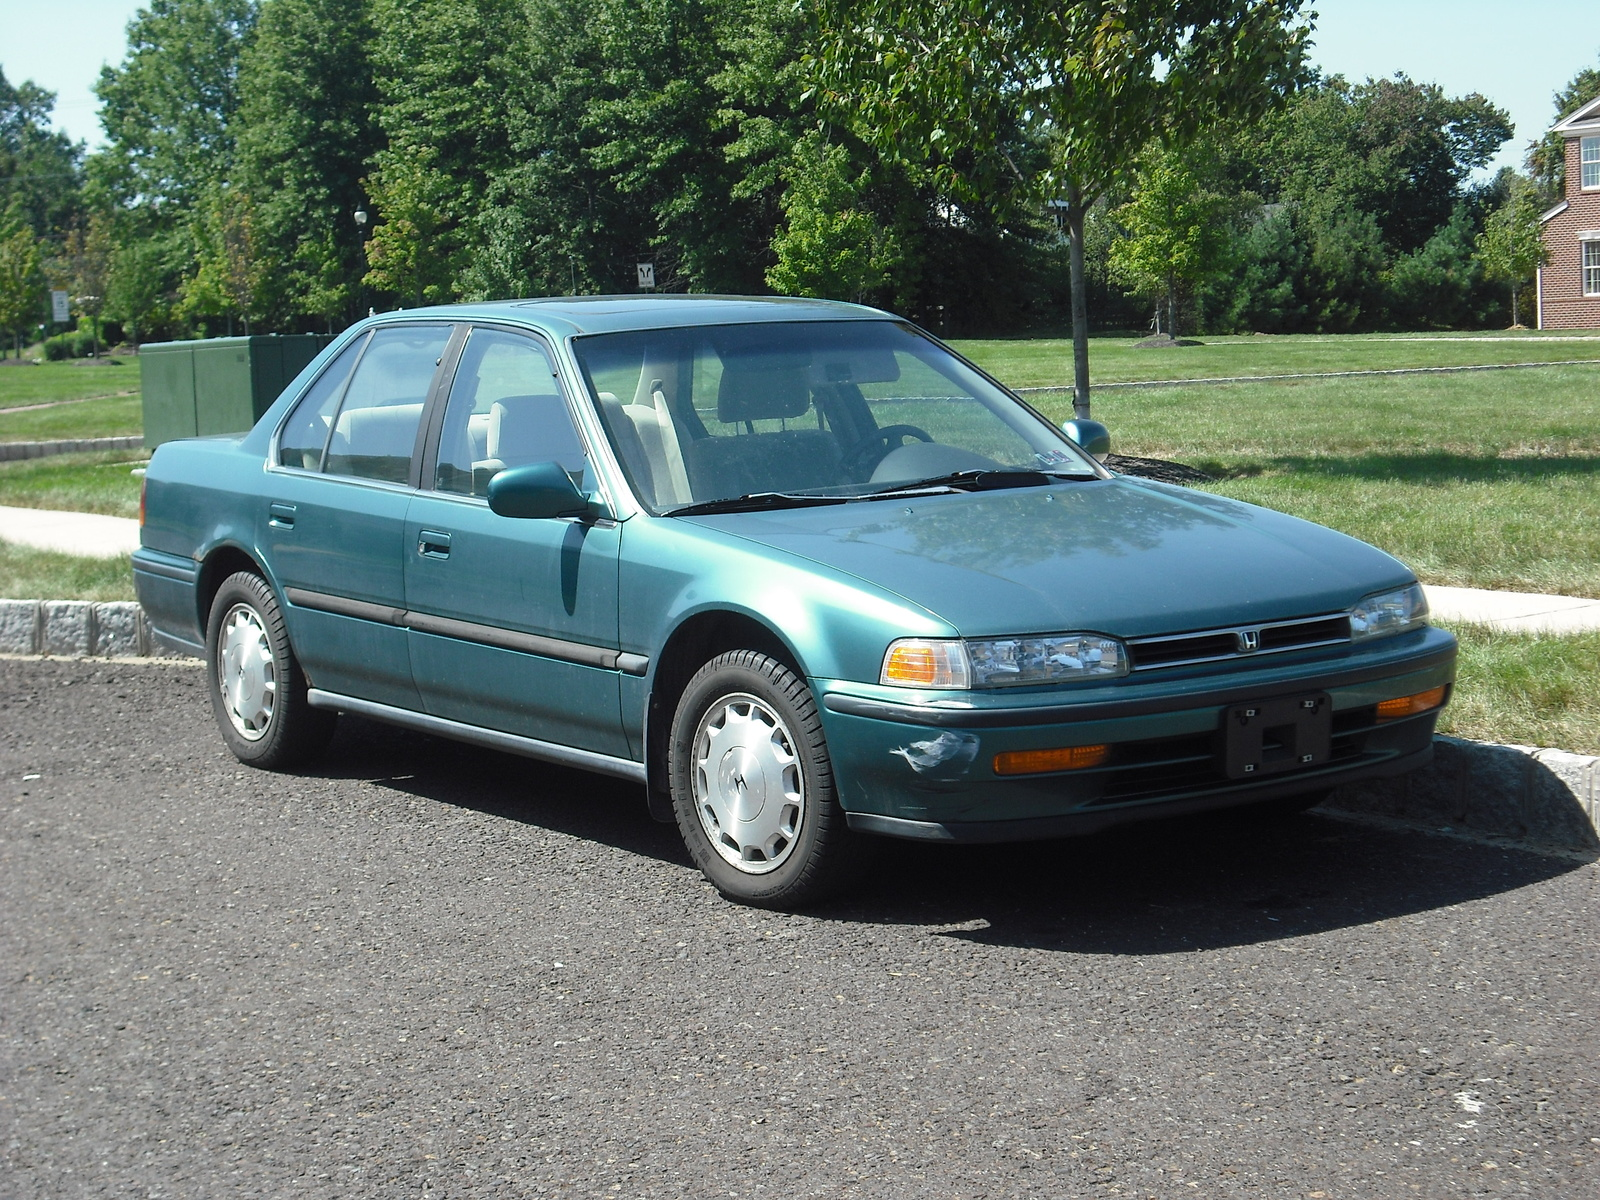 1993 Honda Accord Pictures Cargurus